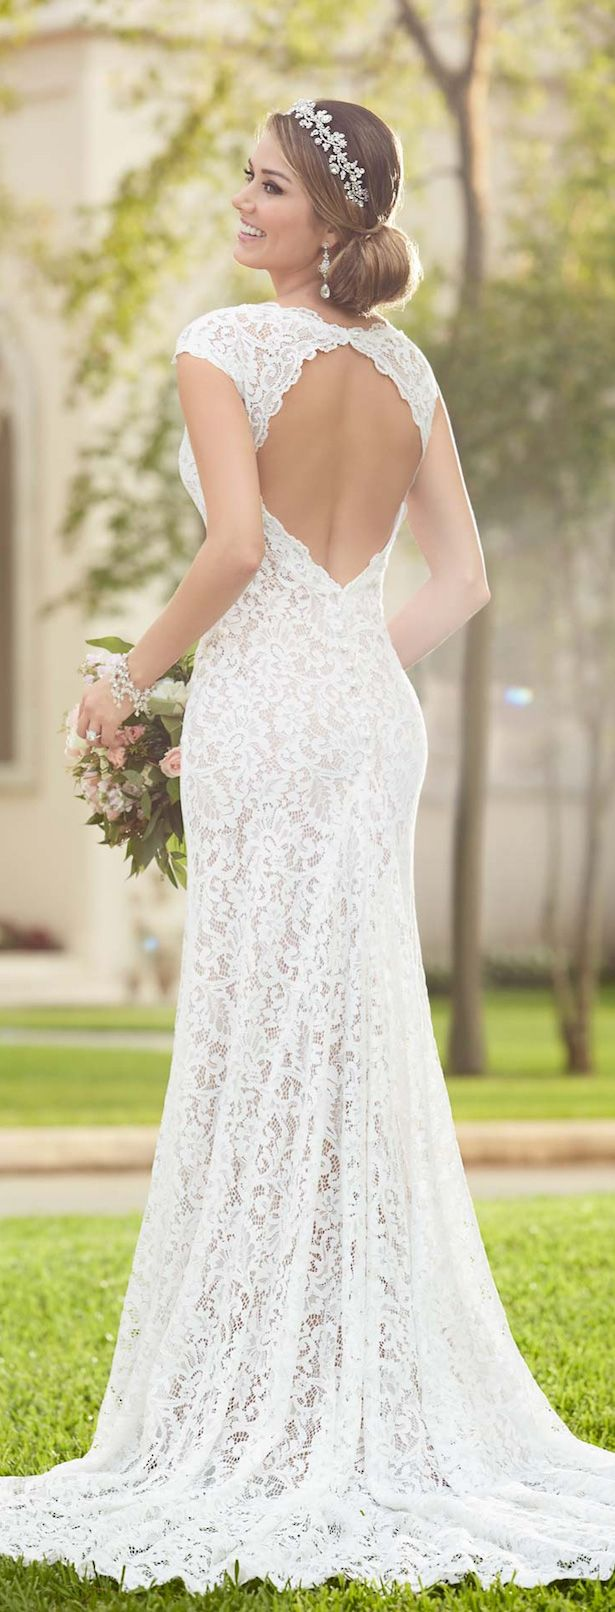 Stella York Spring 2016 Wedding Dress - Belle The Magazine                                                                                                                                                                                 More